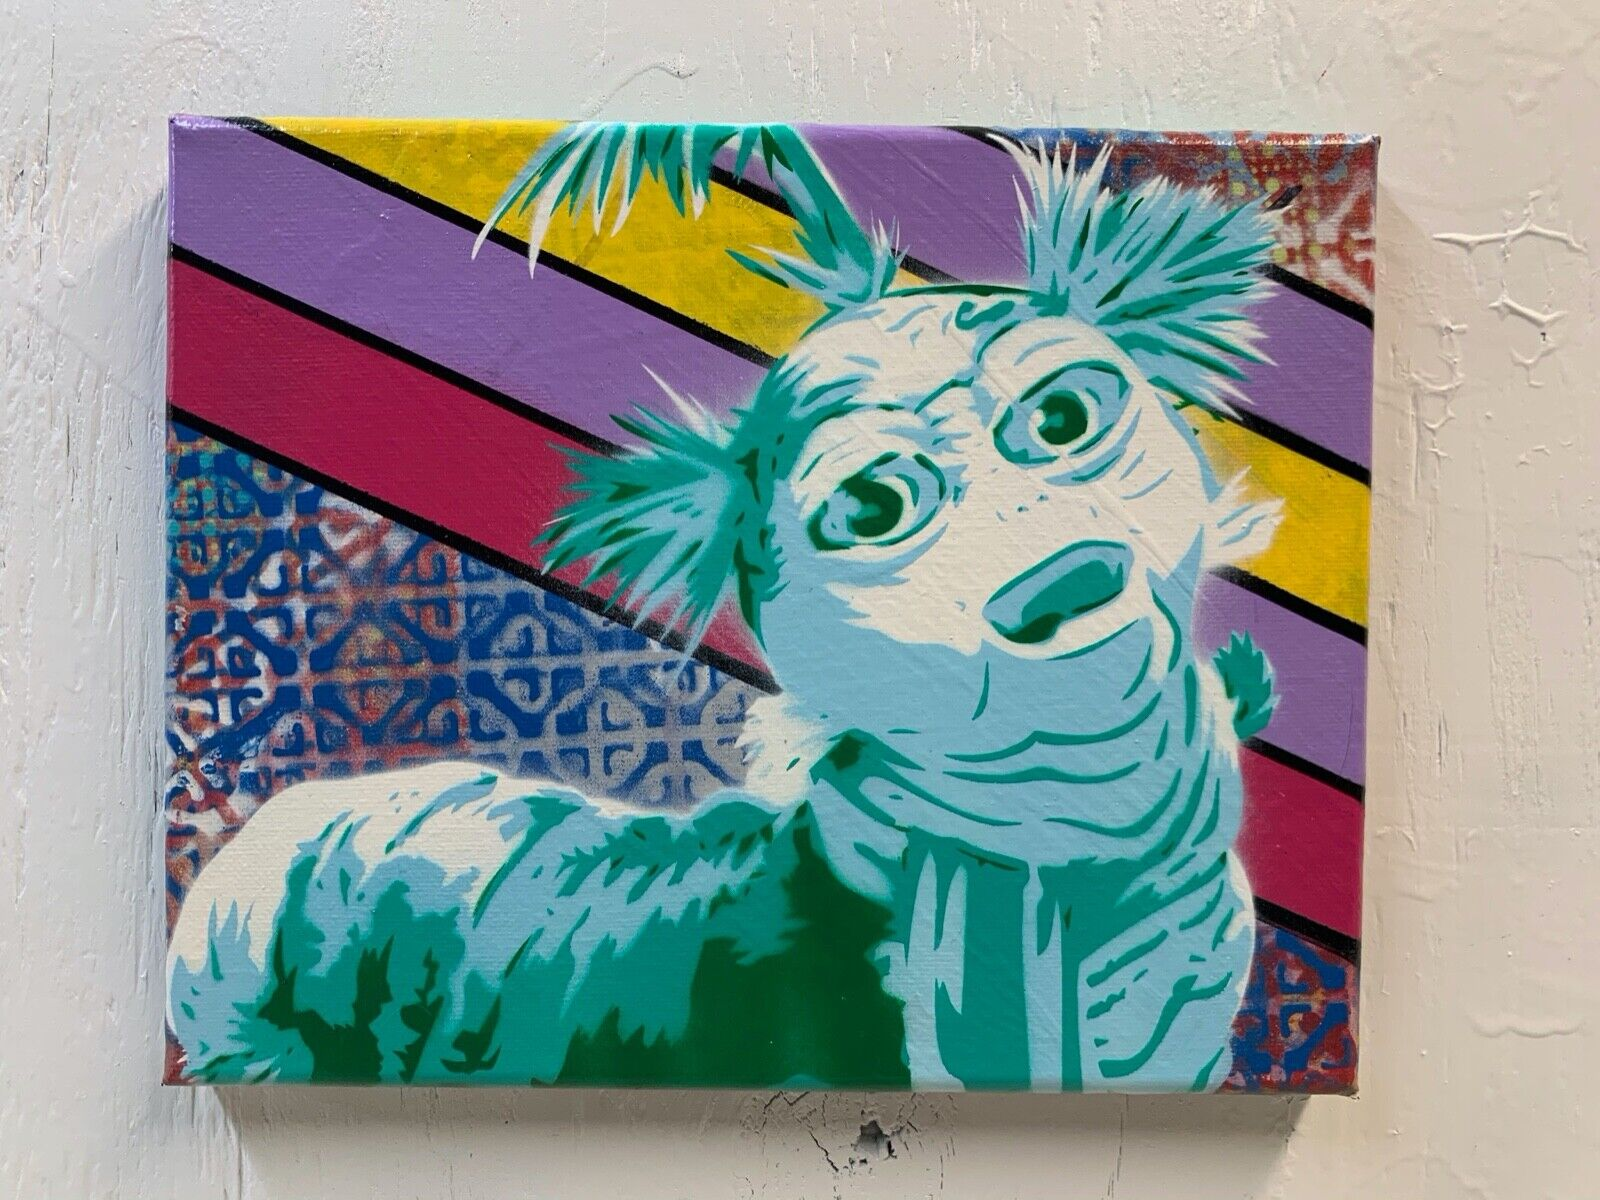 Labyrinth 8 x10 x1 Painting On Canvas - Worm Movie Art Bowie Fantasy 80s Book - $50.00